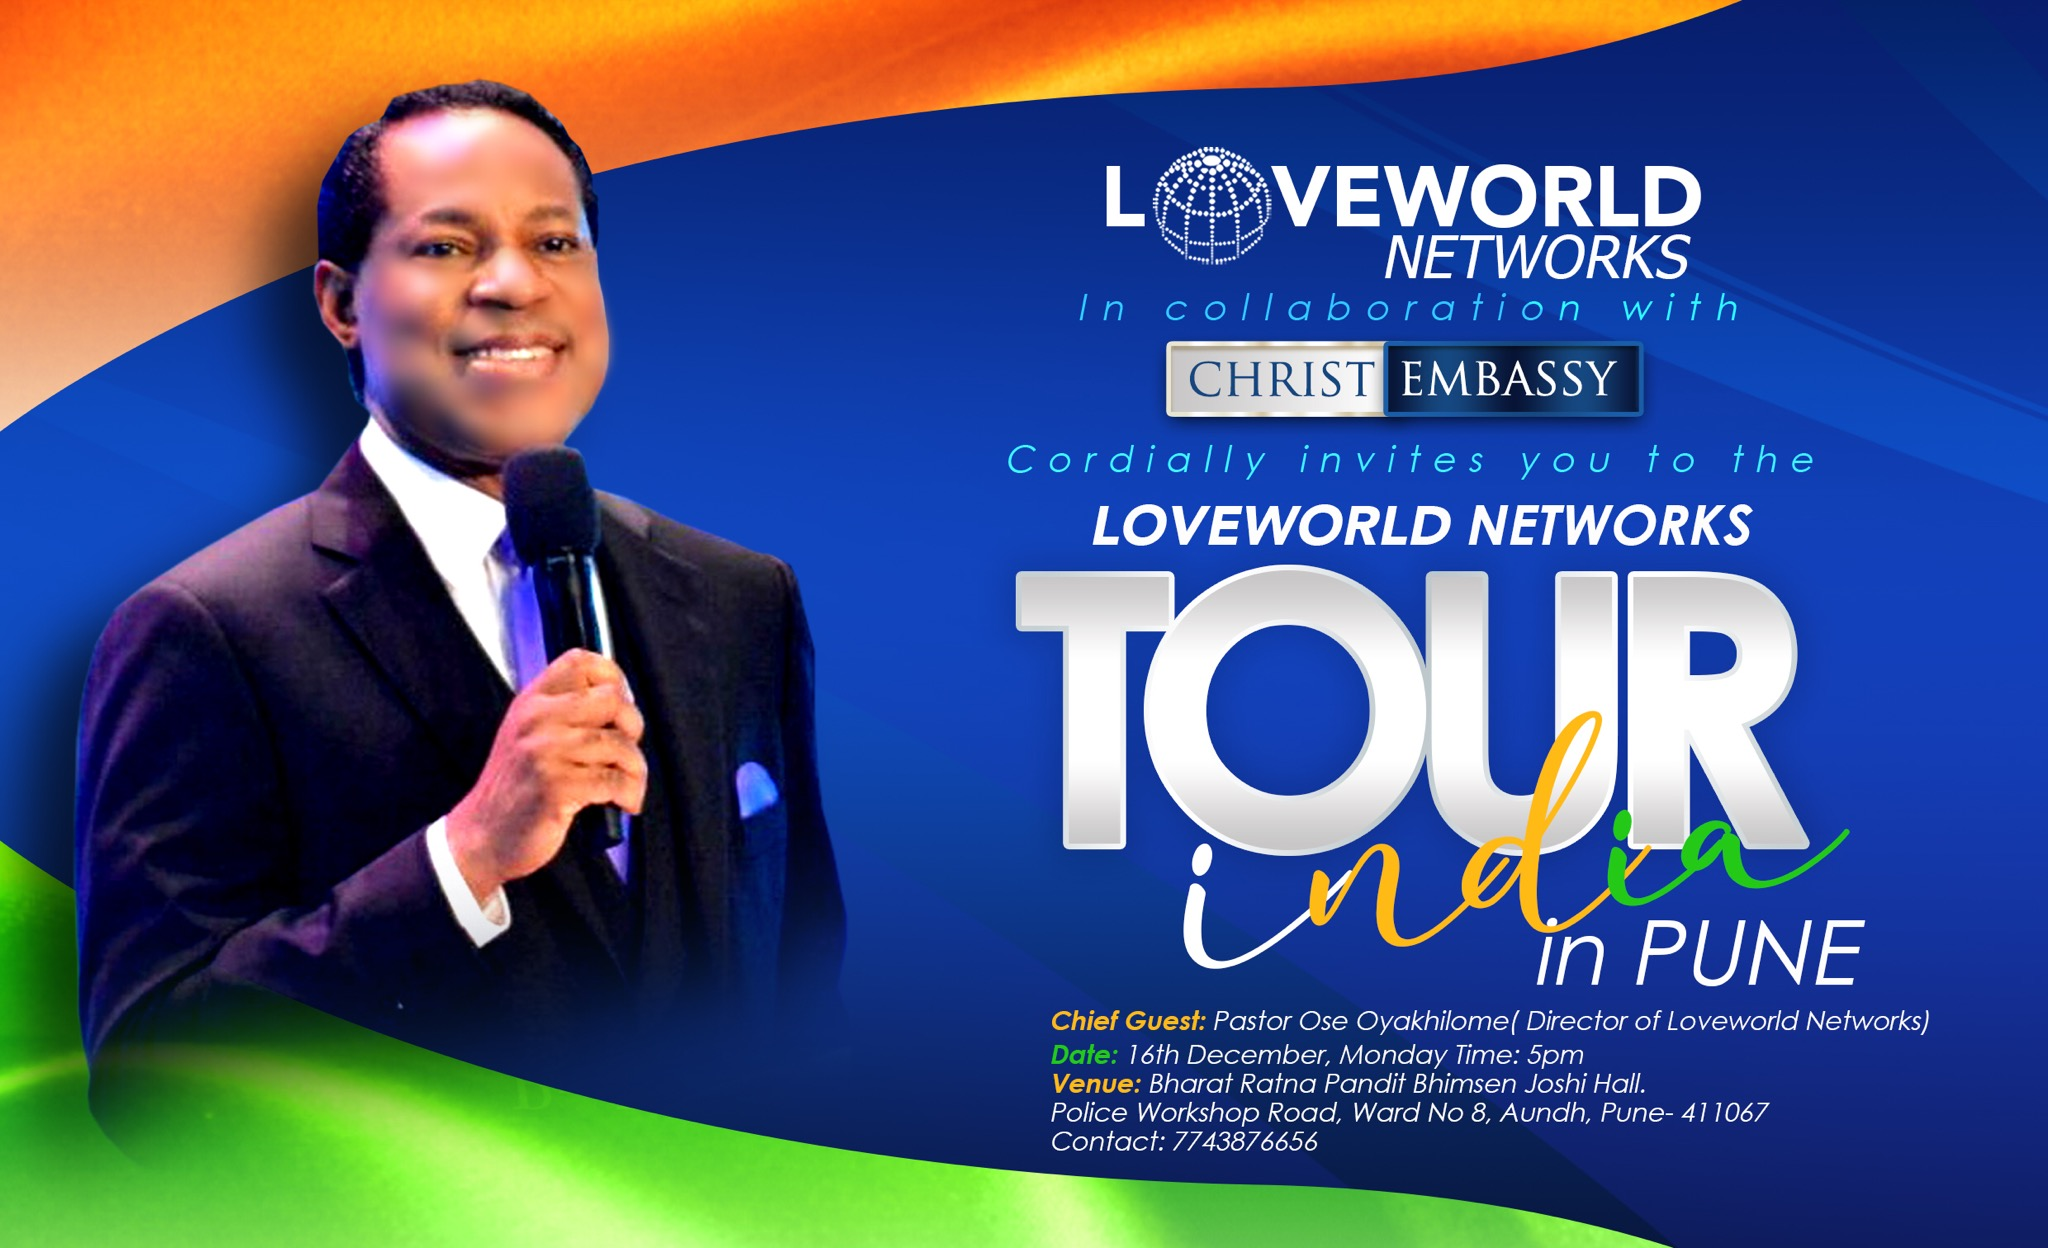 AND THE LOVEWORLD NETWORKS TOUR